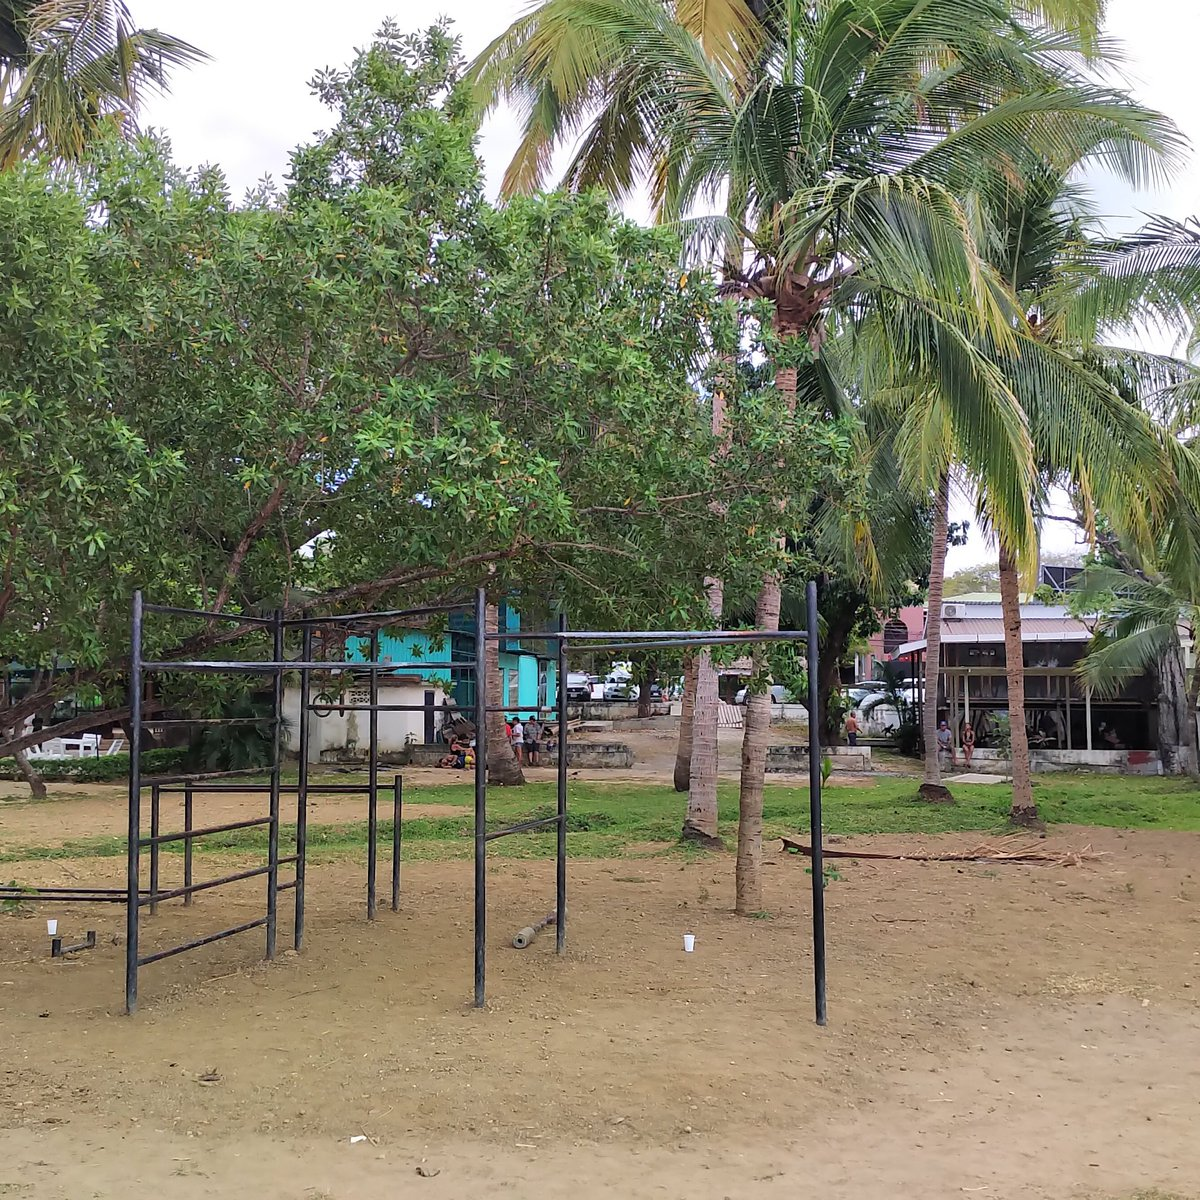 Who needs a gym membership when you can do calisthenics on the beach. #CostaRica<br>http://pic.twitter.com/jMX5g46IQg